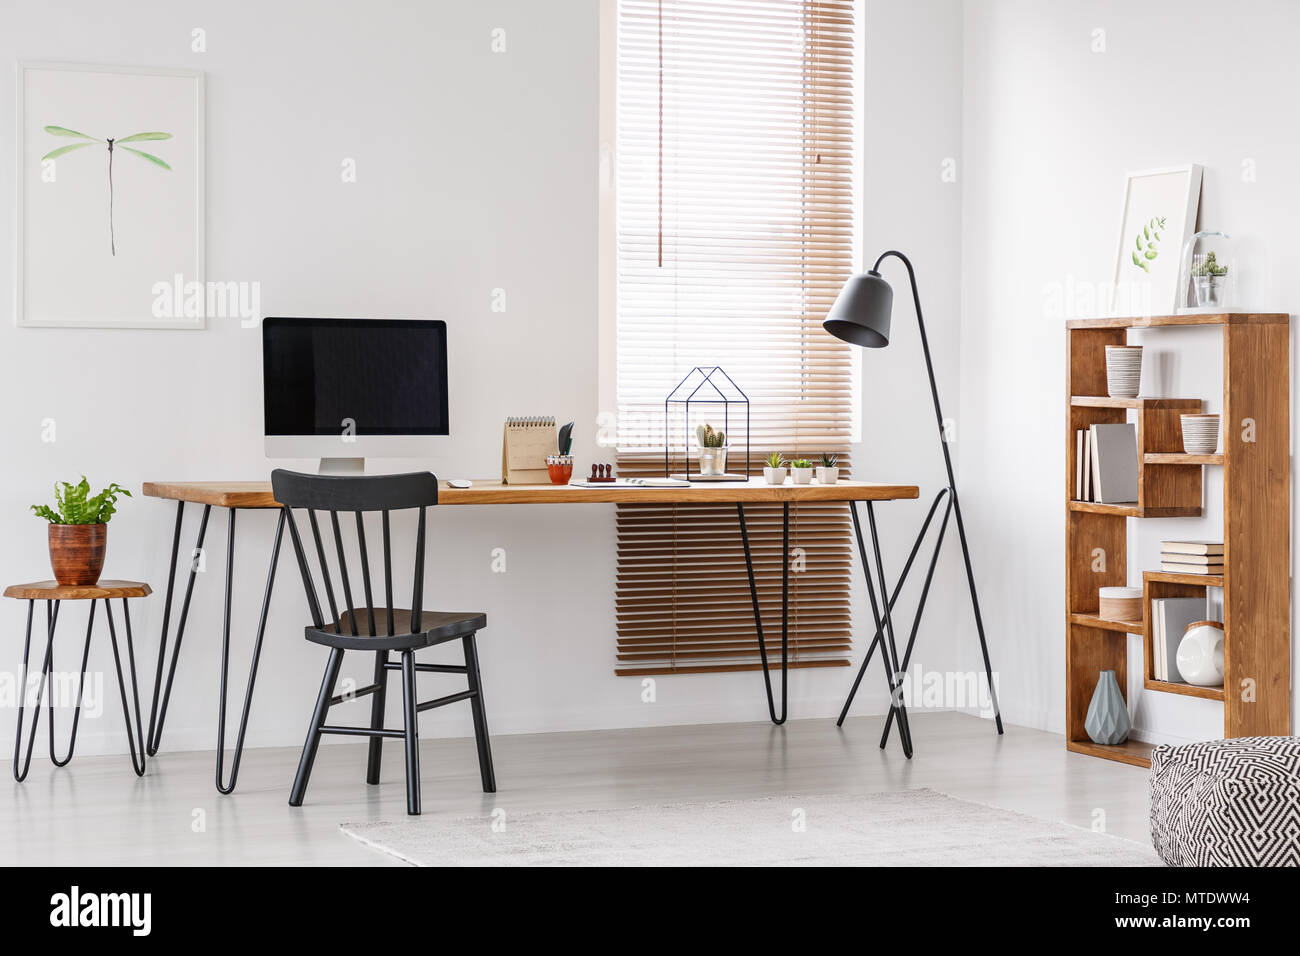 Black Chair At Wooden Desk With Computer Monitor In Bright